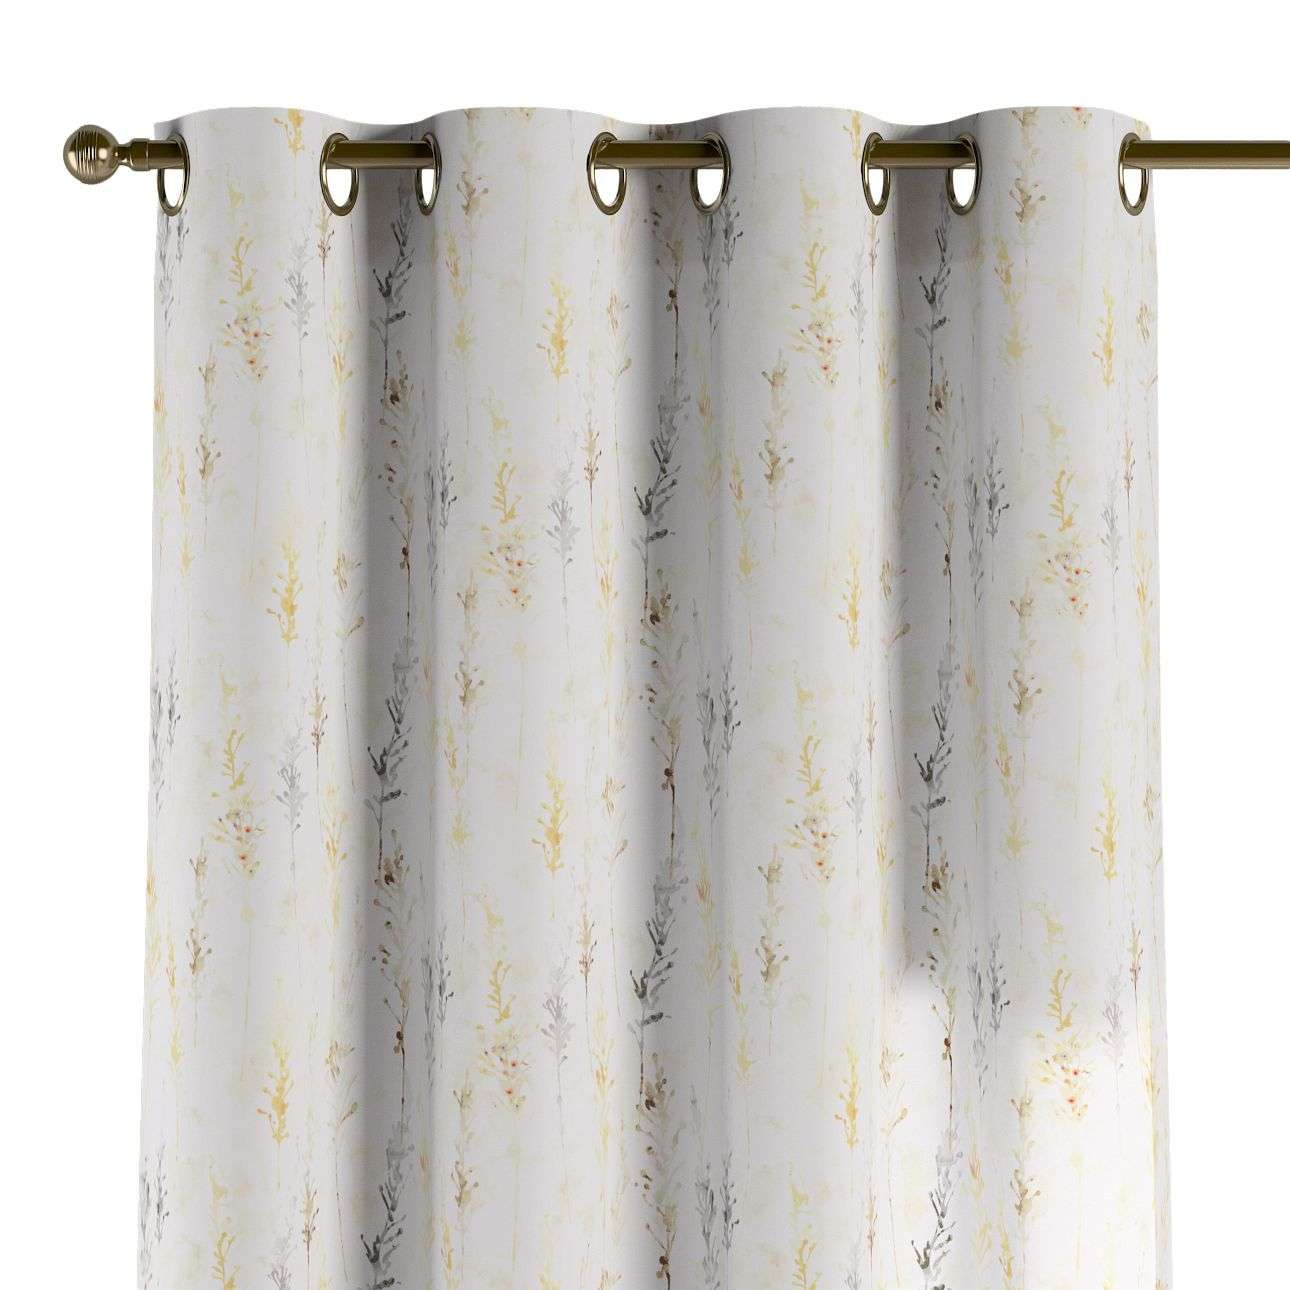 Eyelet curtains in collection Acapulco, fabric: 141-36